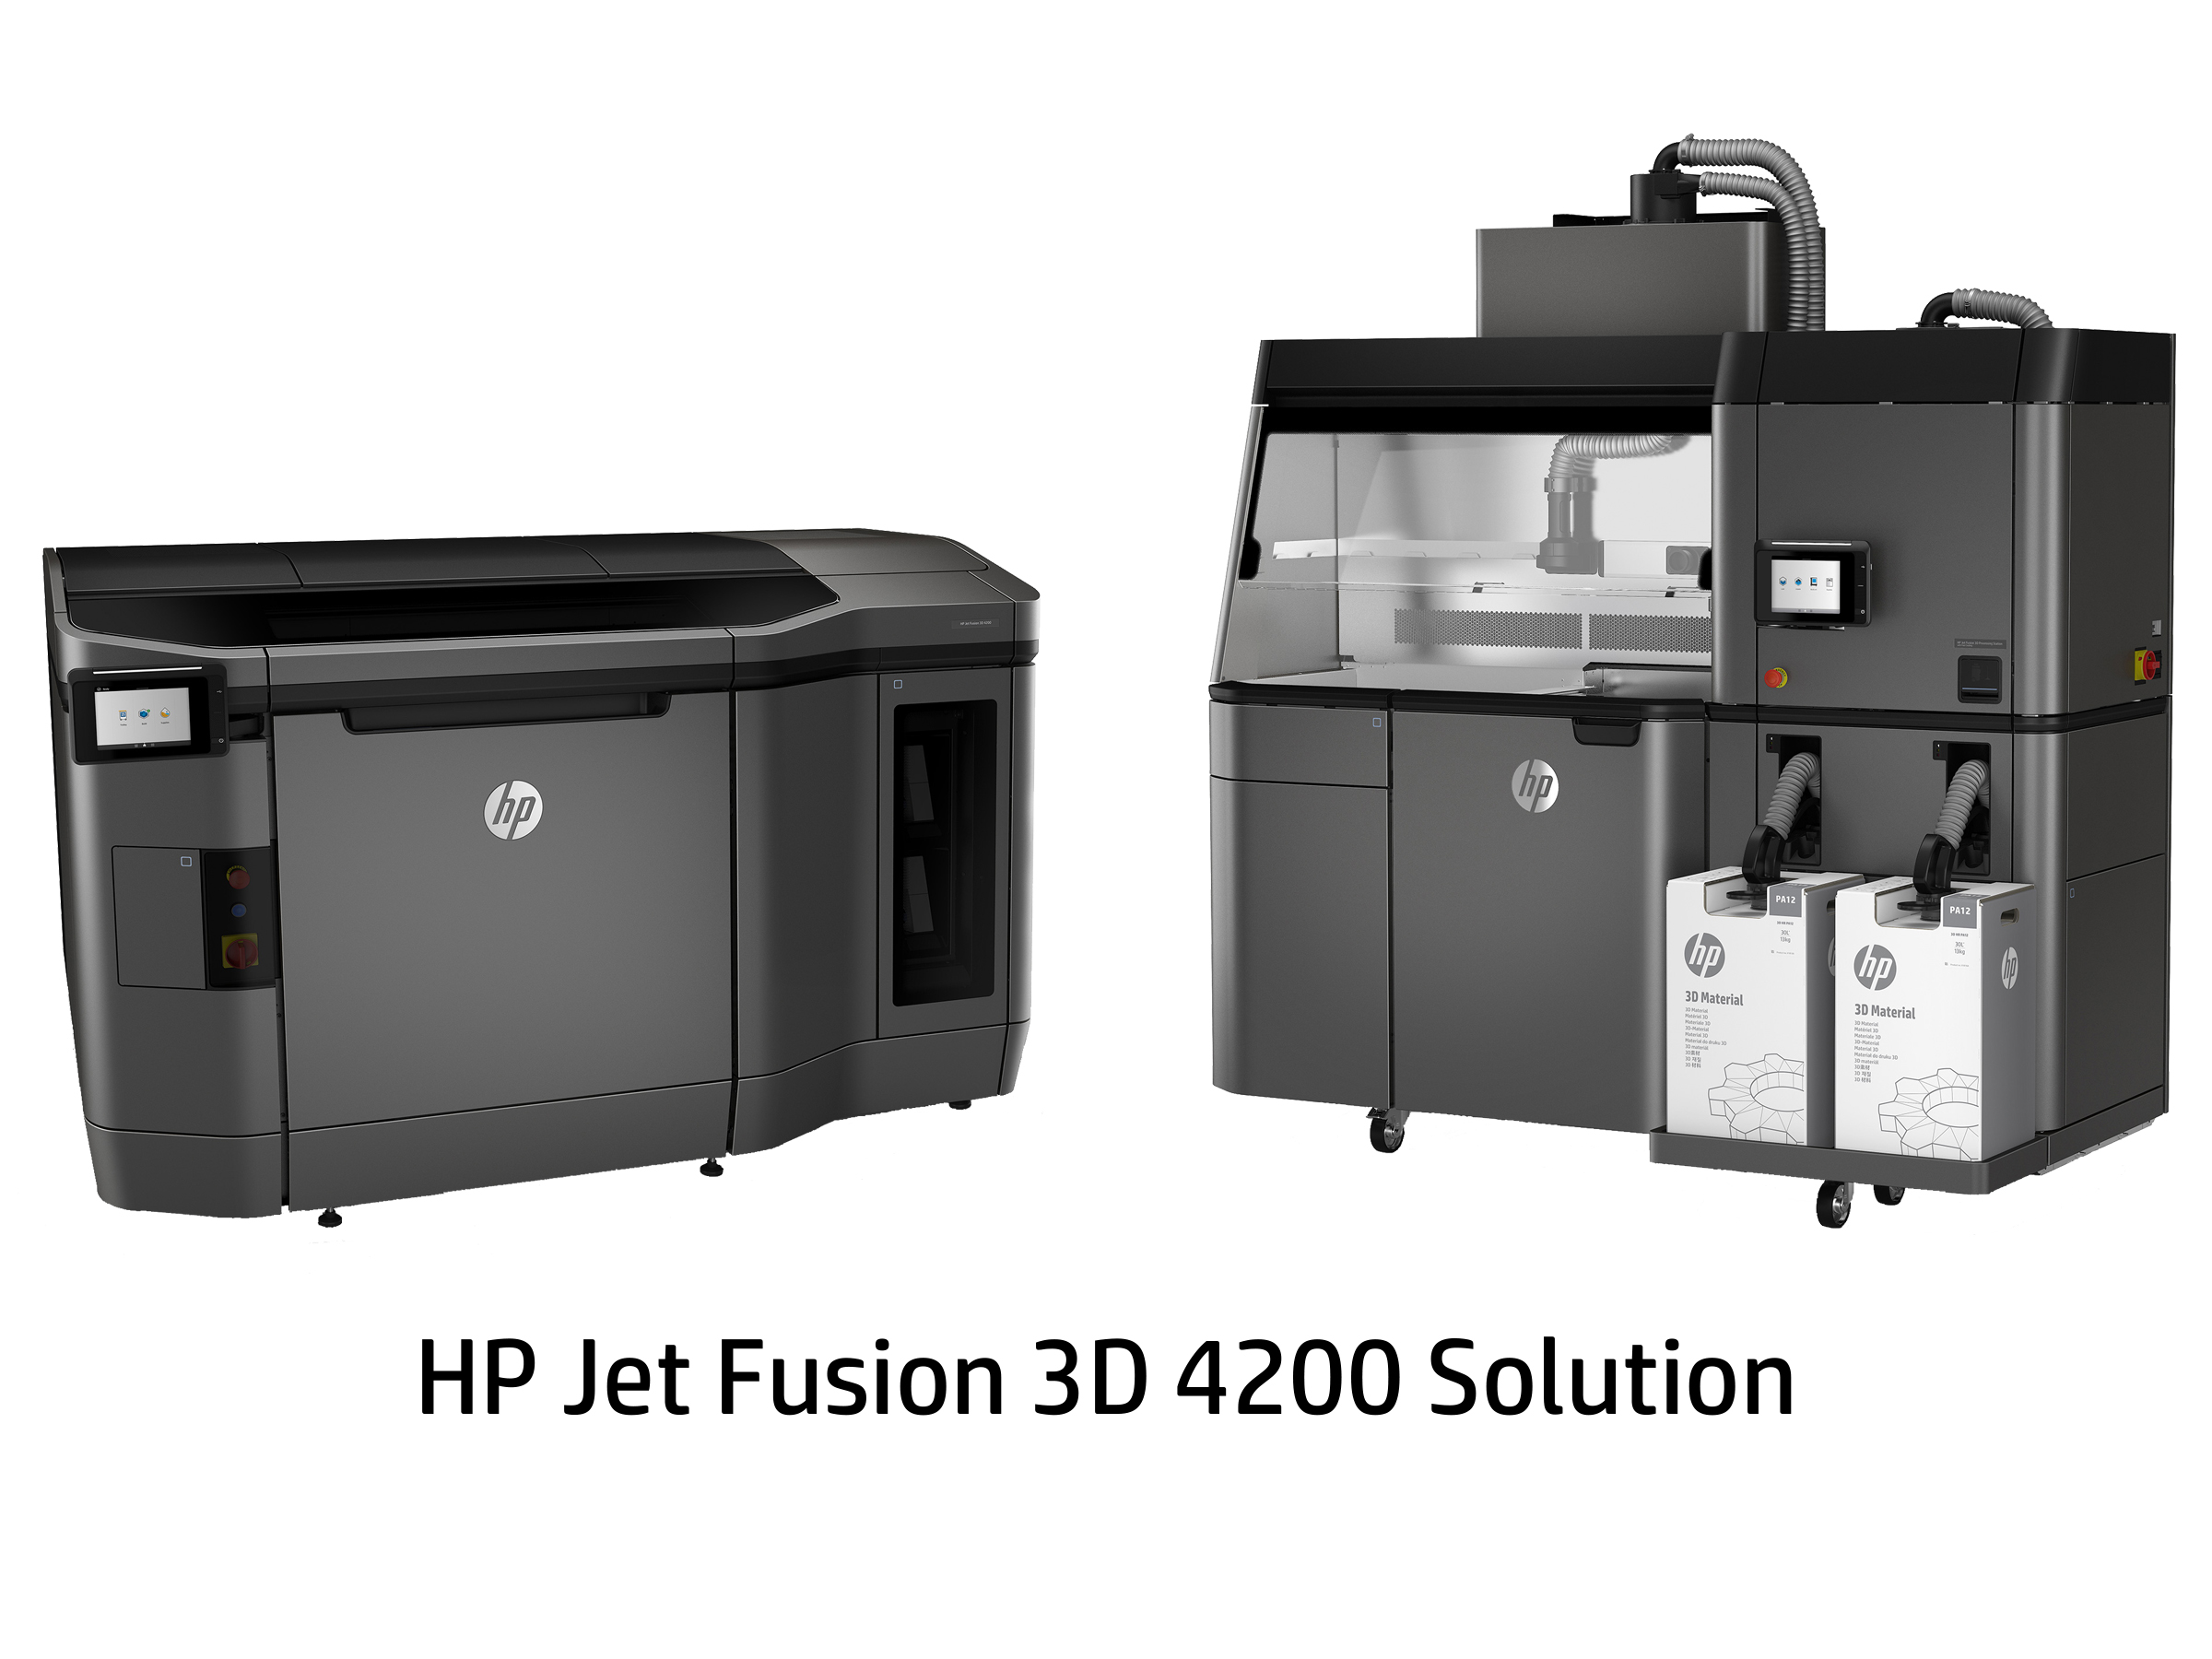 3dprinter_hp_jet_fusion_3d_4200_solution_cap-small.jpg